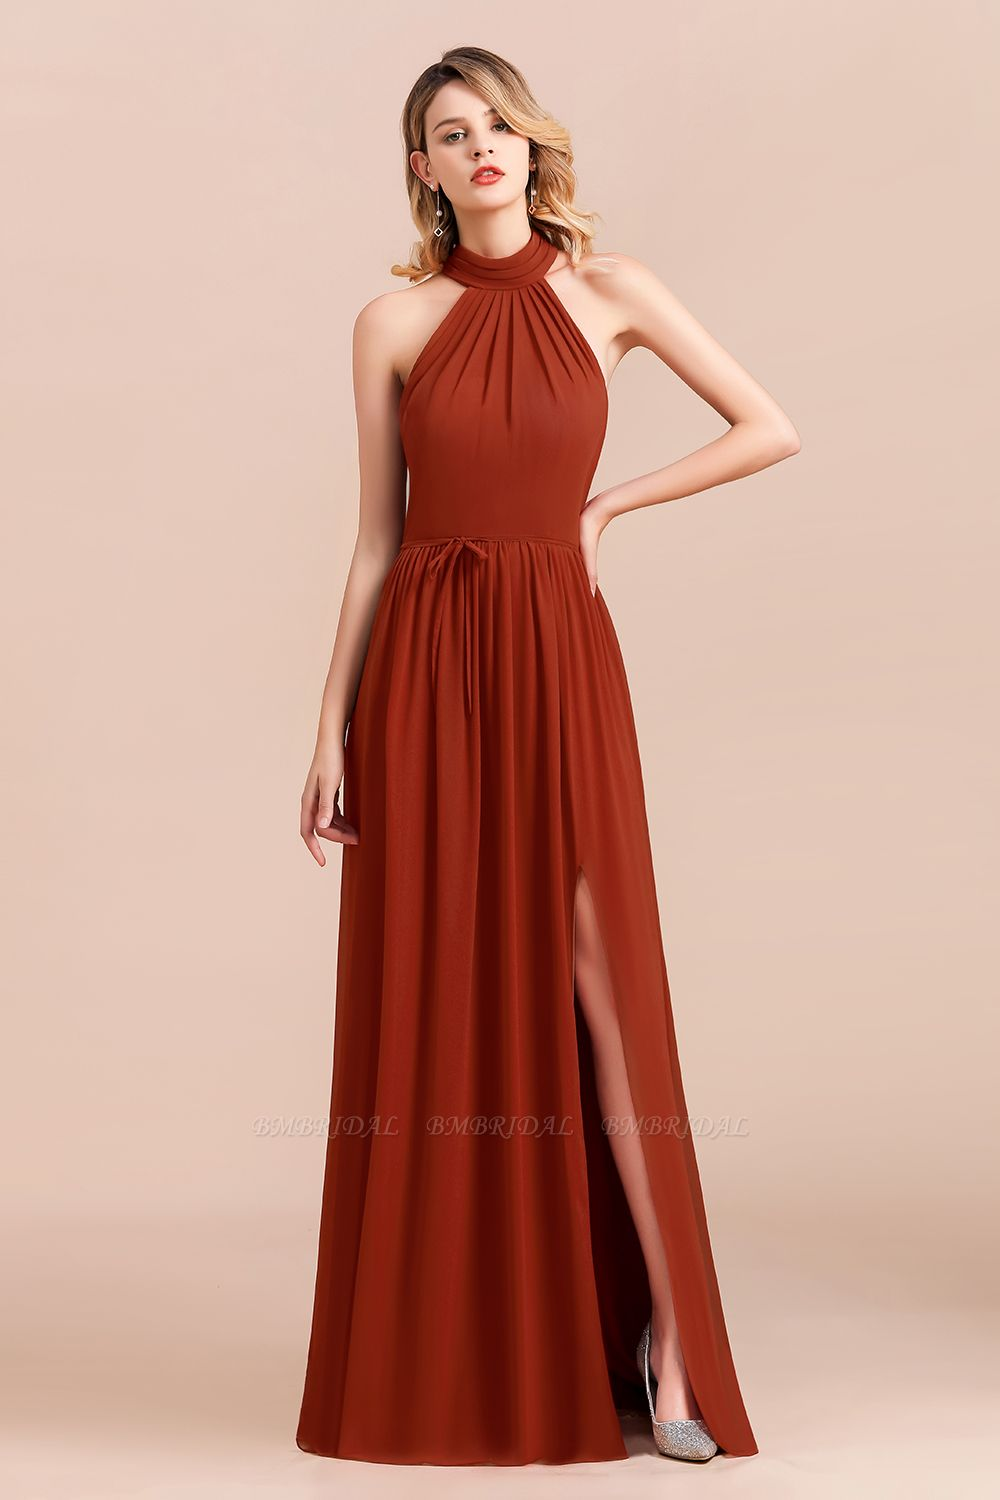 Rust Halter Long Bridesmaid Dresses Online With Front Split